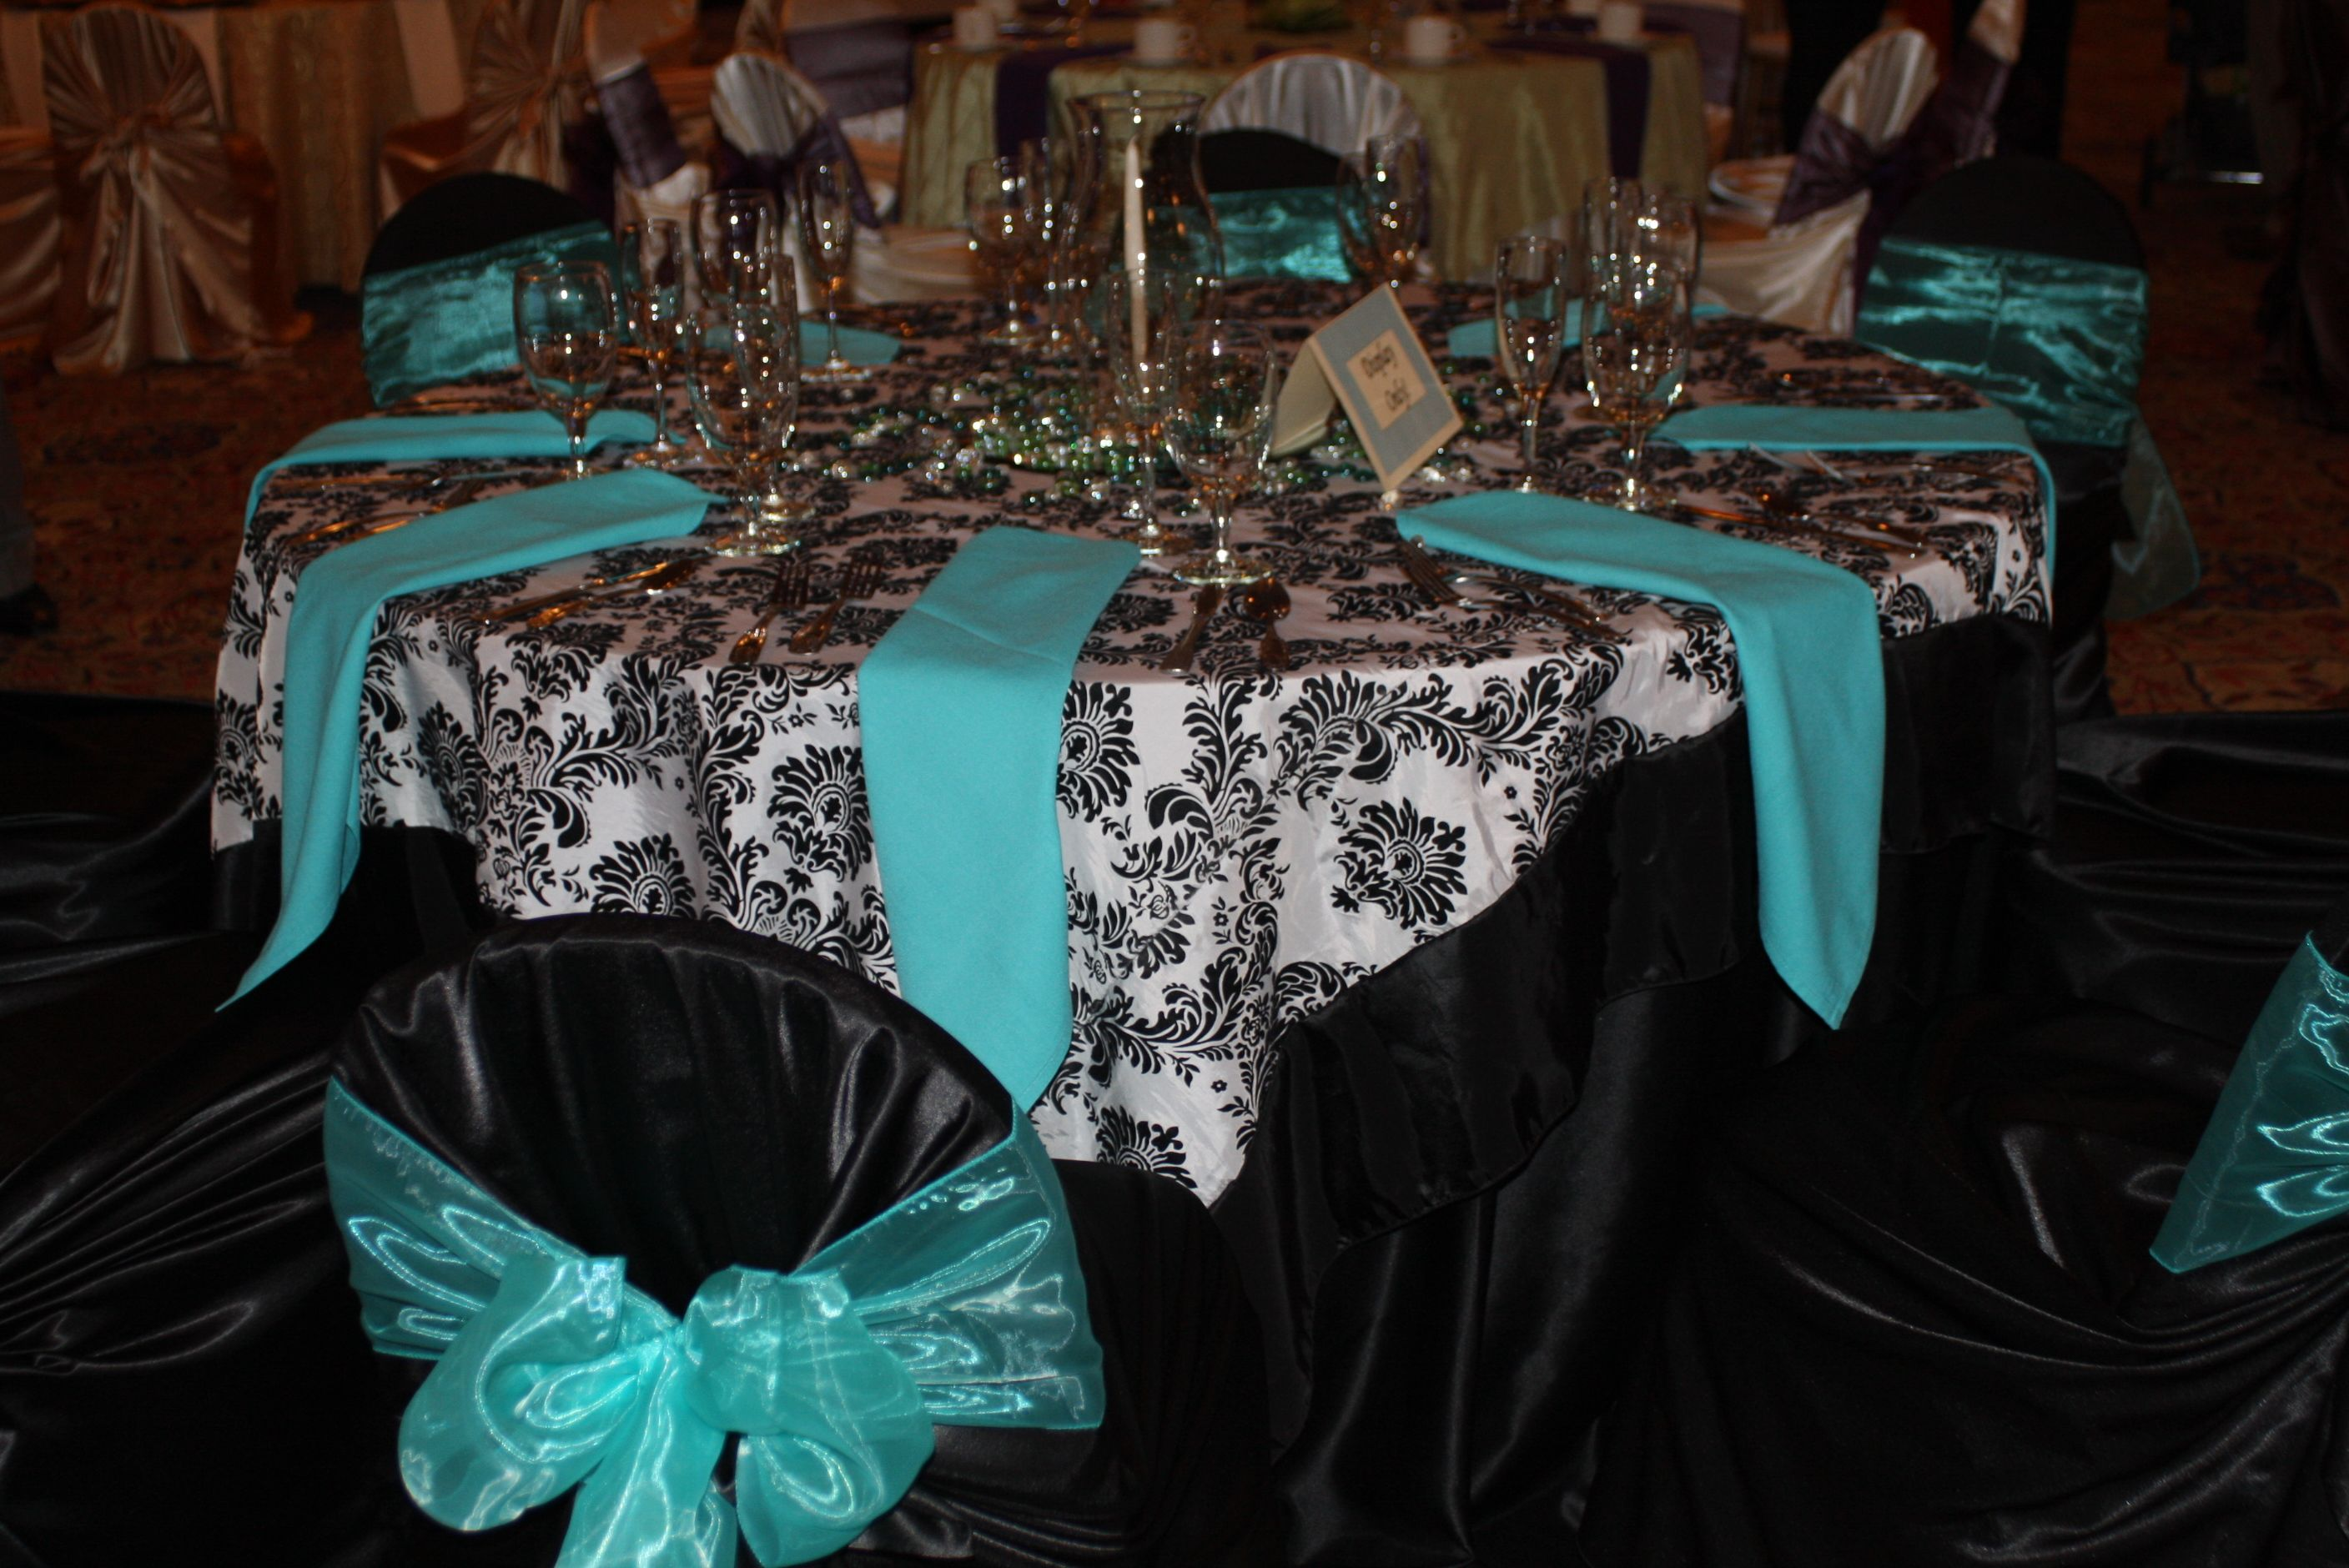 Just An Idea Of How The Black Would Look With The Tiffany